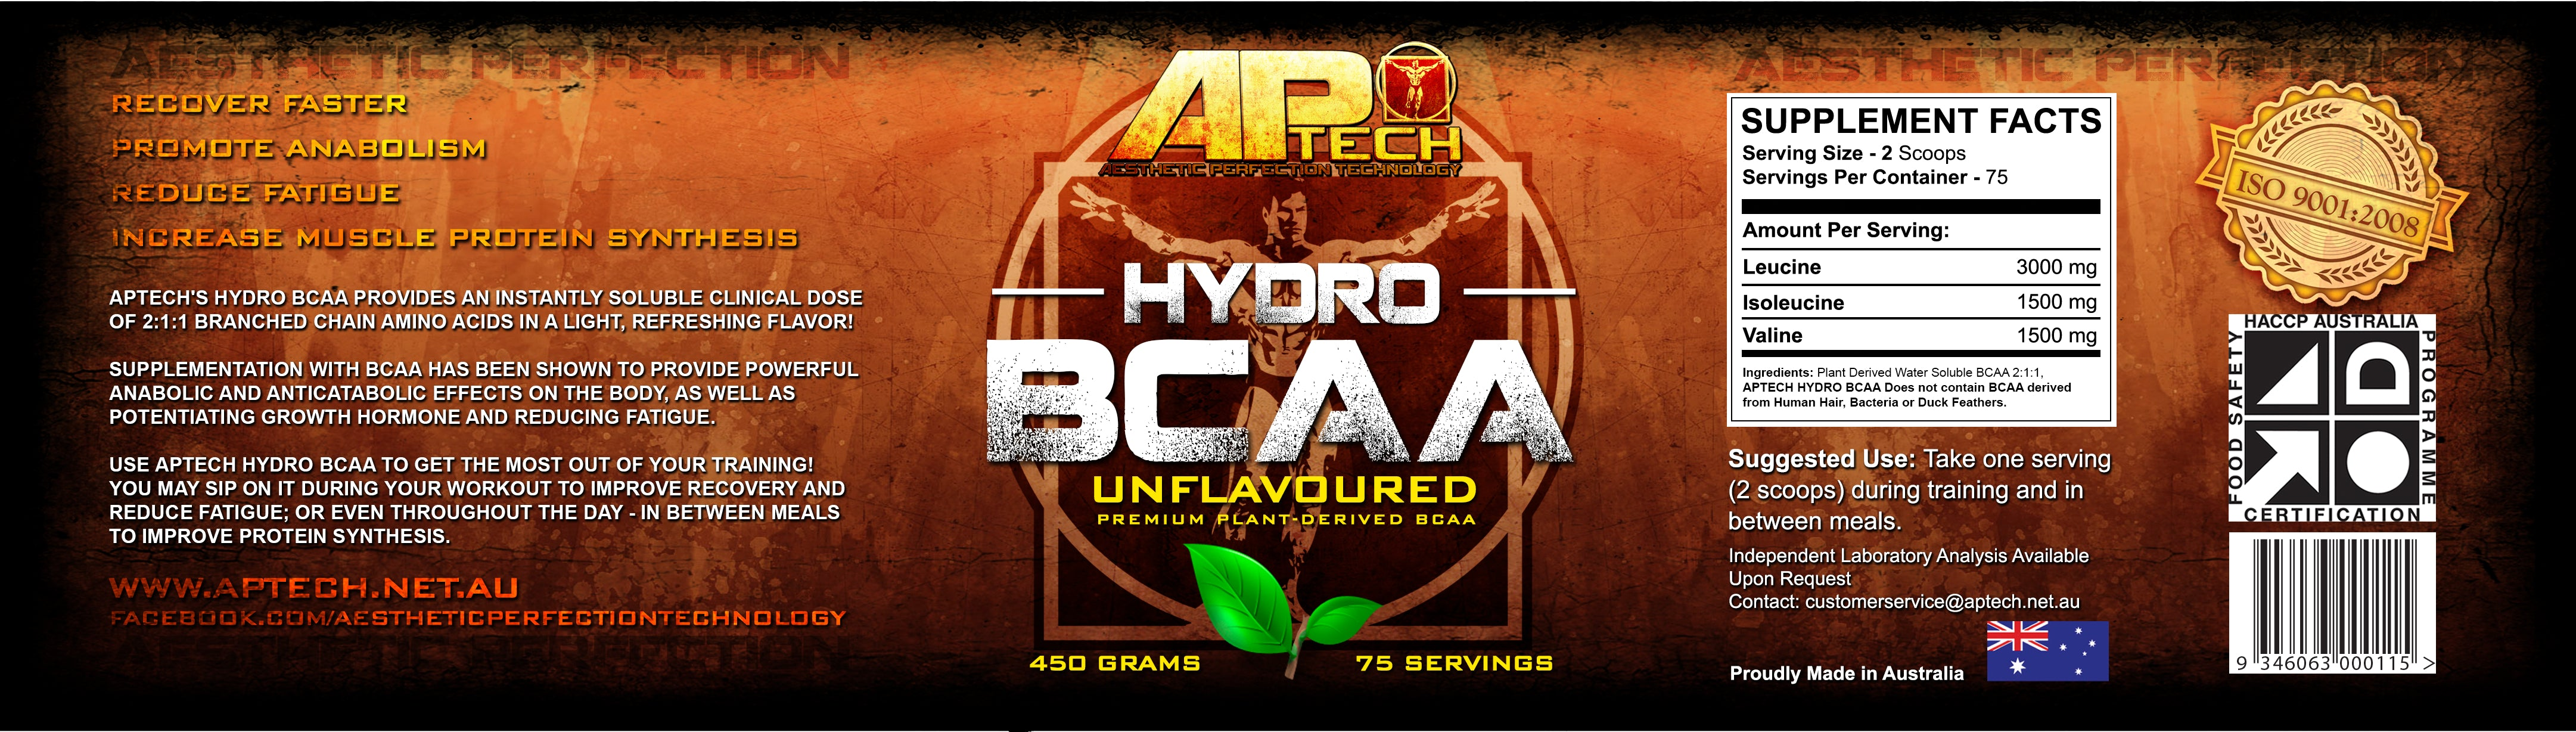 APTech HYDRO BCAA Product Label